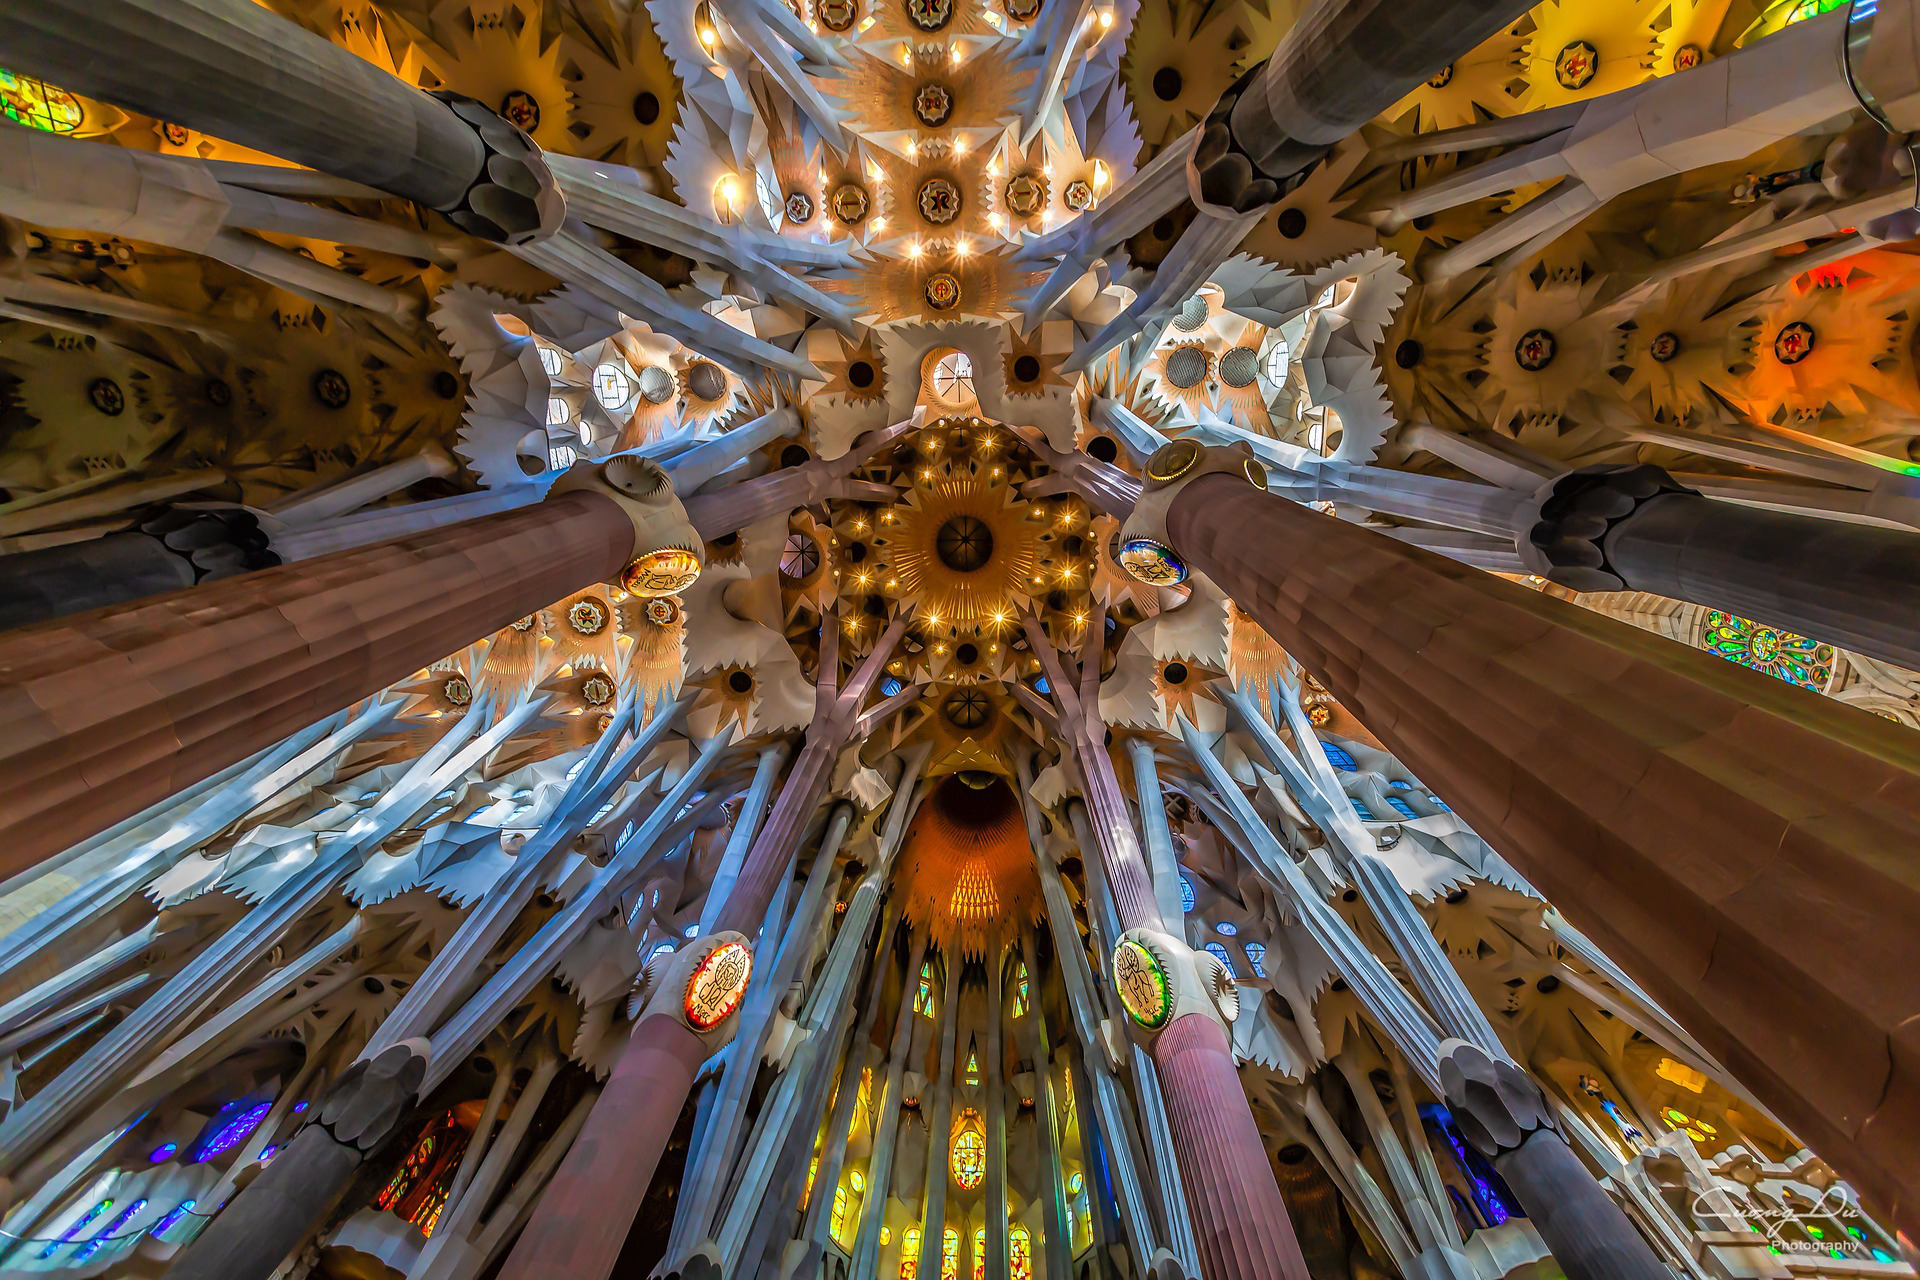 Barcelona, integracja, incentive, event, Sagrada Familia